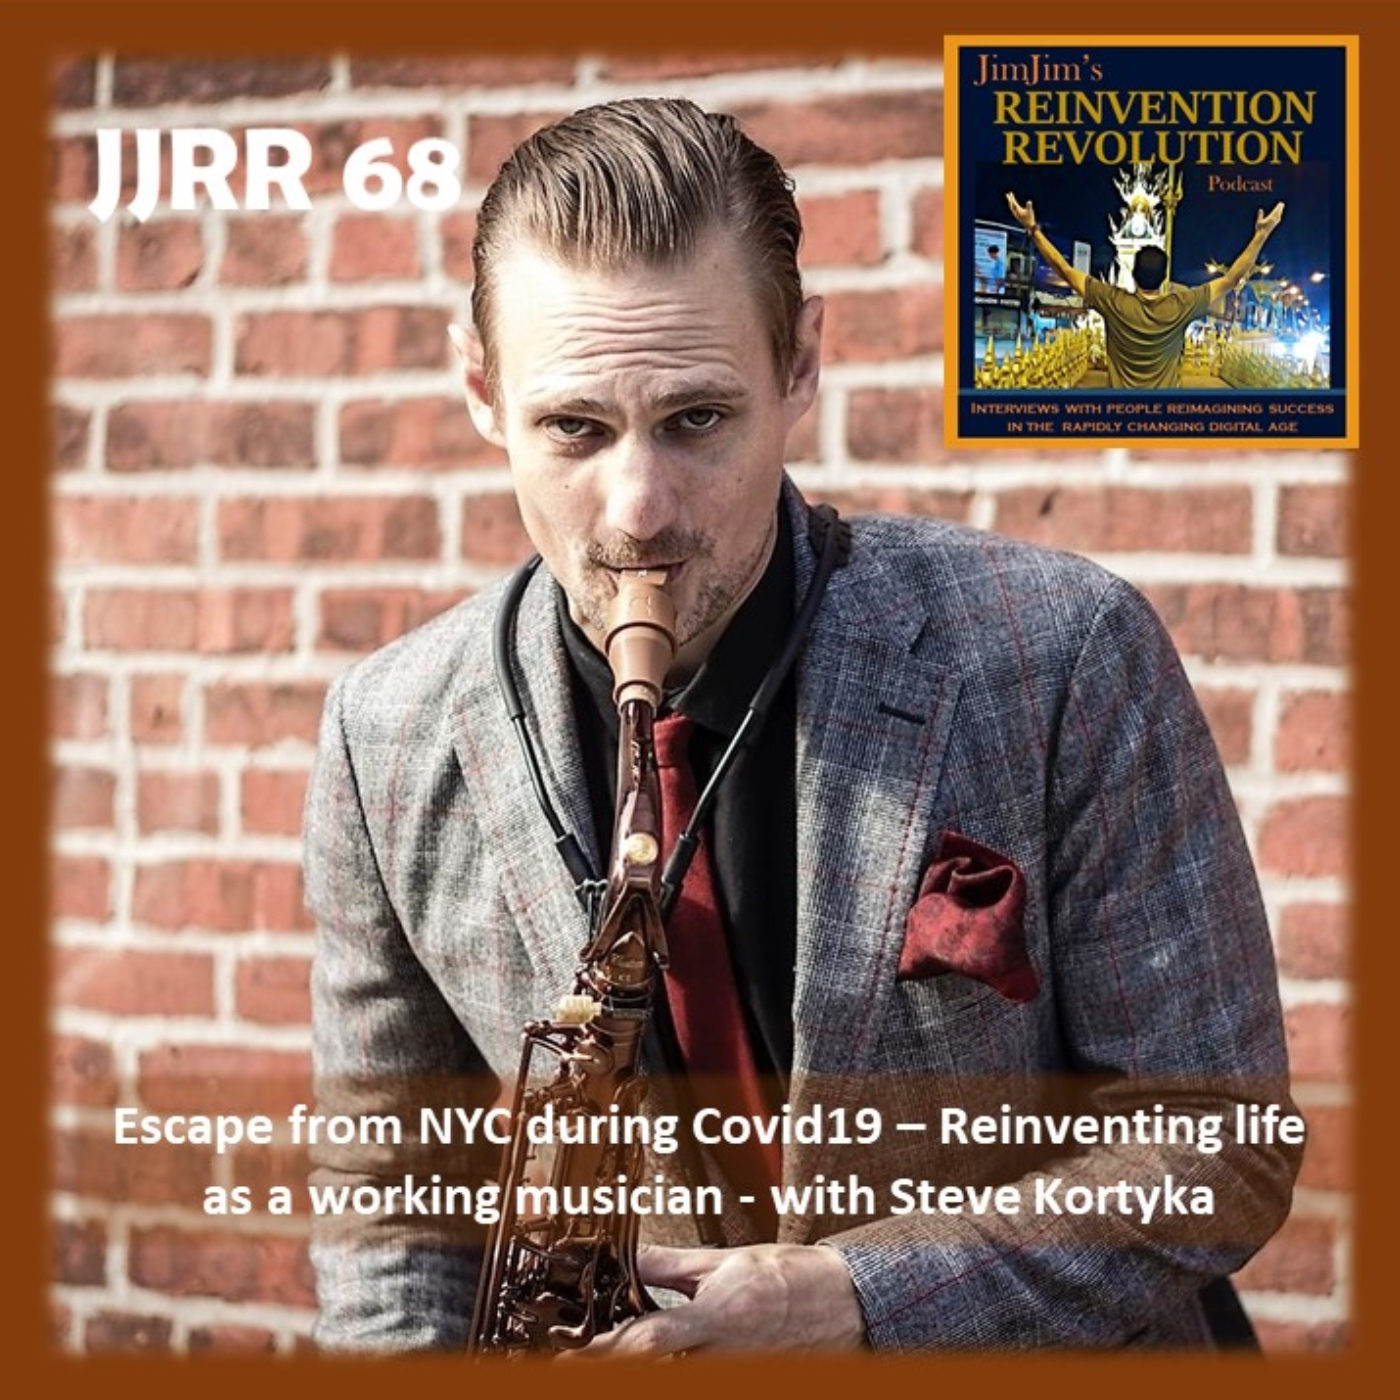 JJRR 68 Escape from NYC during Covid19 – Reinventing life as a working musician – with Steve Kortyka